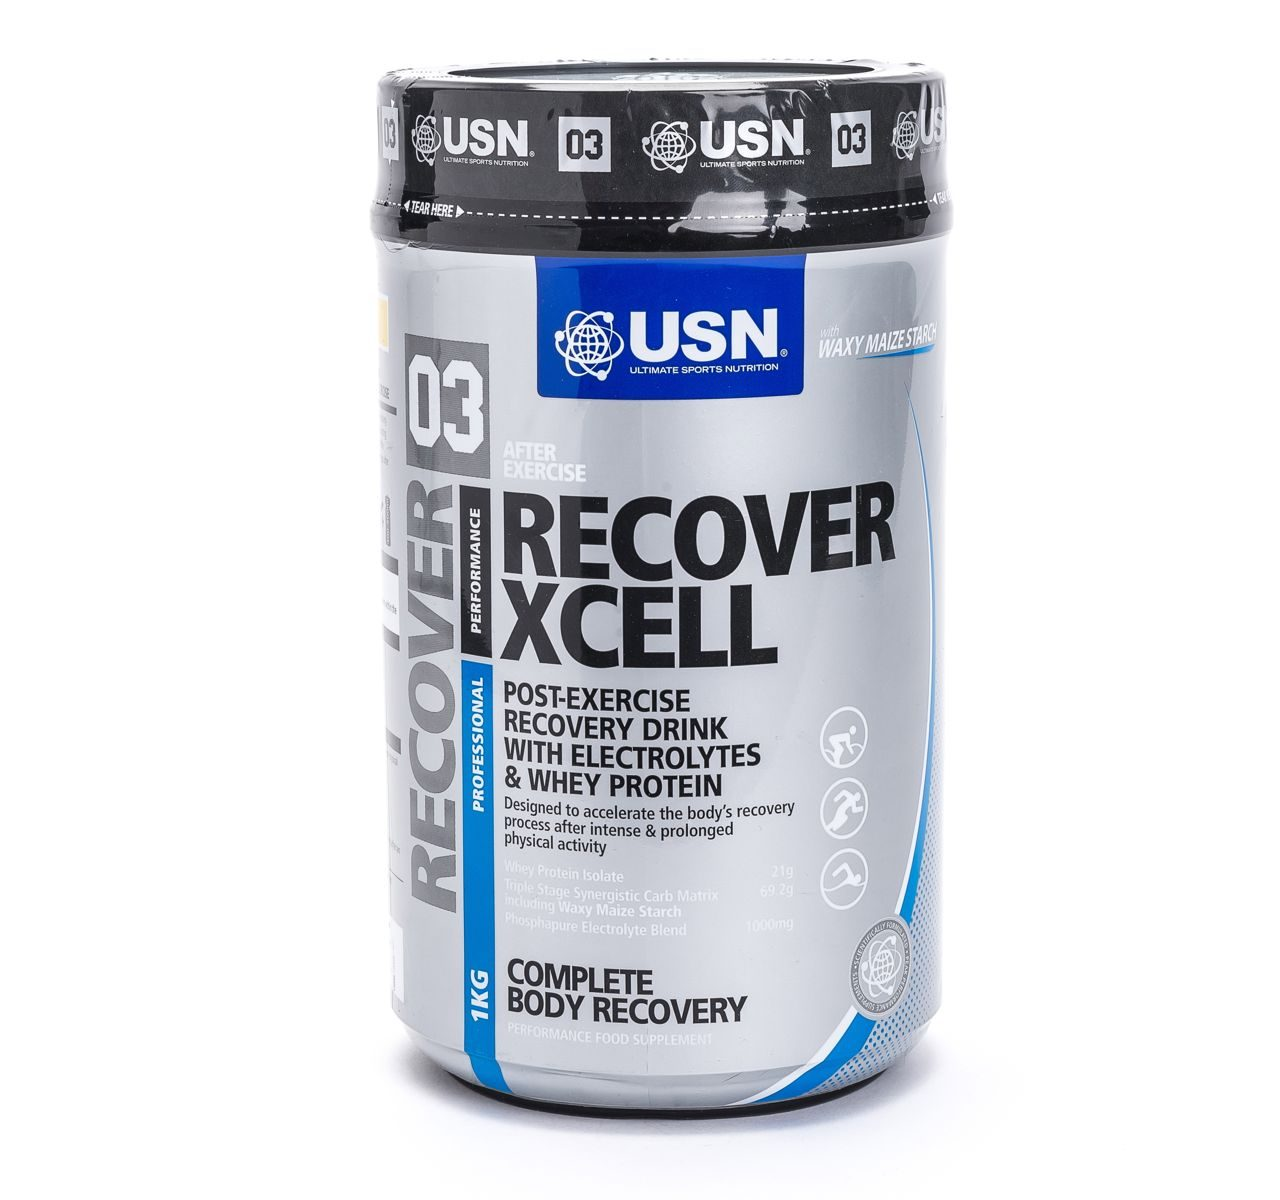 USN Recover Xcell